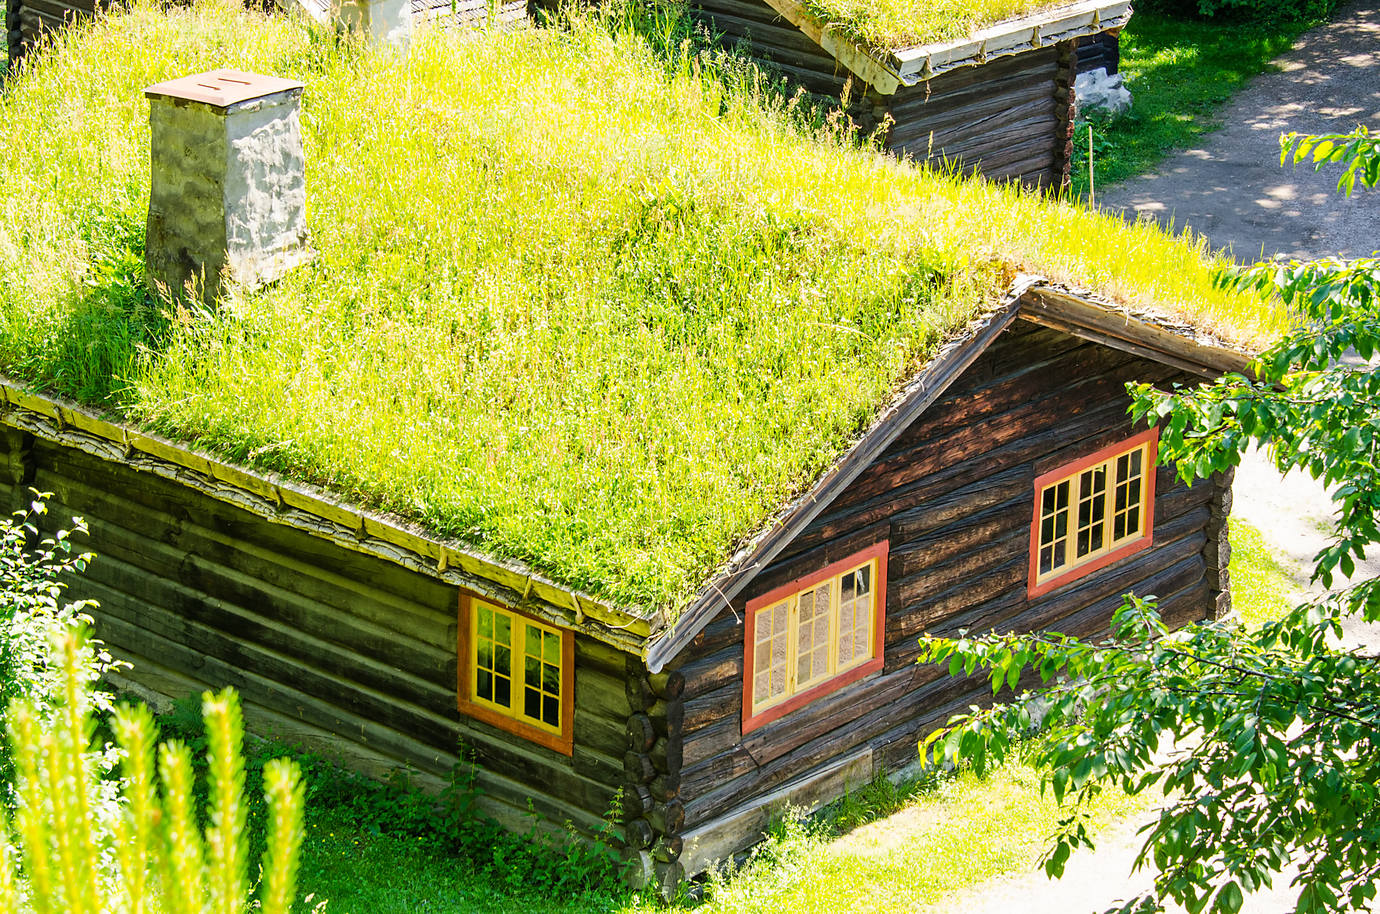 Live Like Bilbo Baggins in Your Own Hobbit Hole